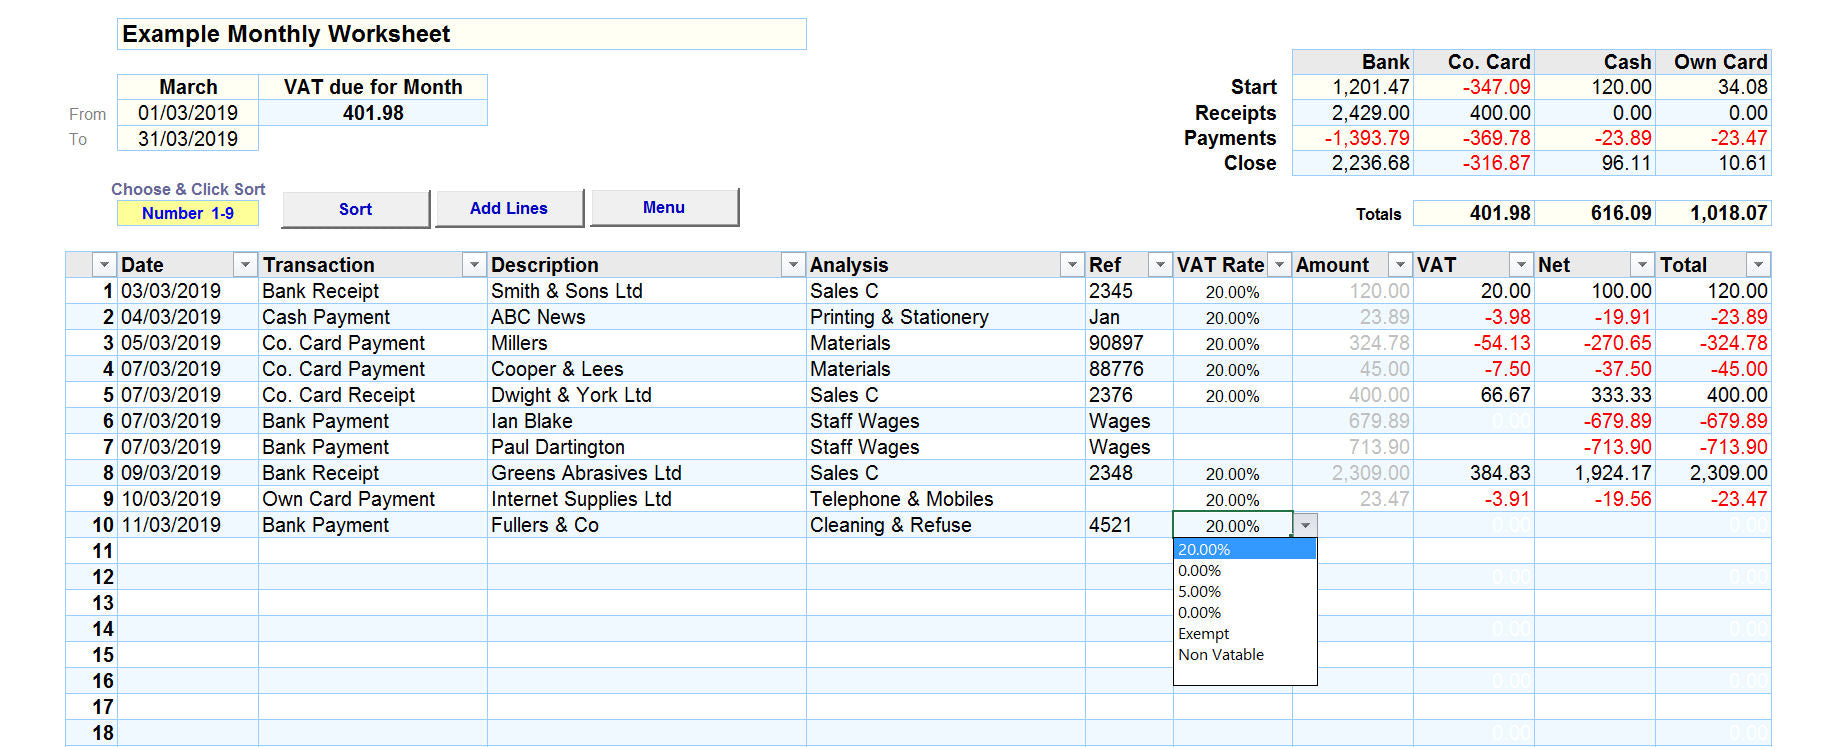 Bookkeeping Spreadsheet with VAT using the Cash Accounting method